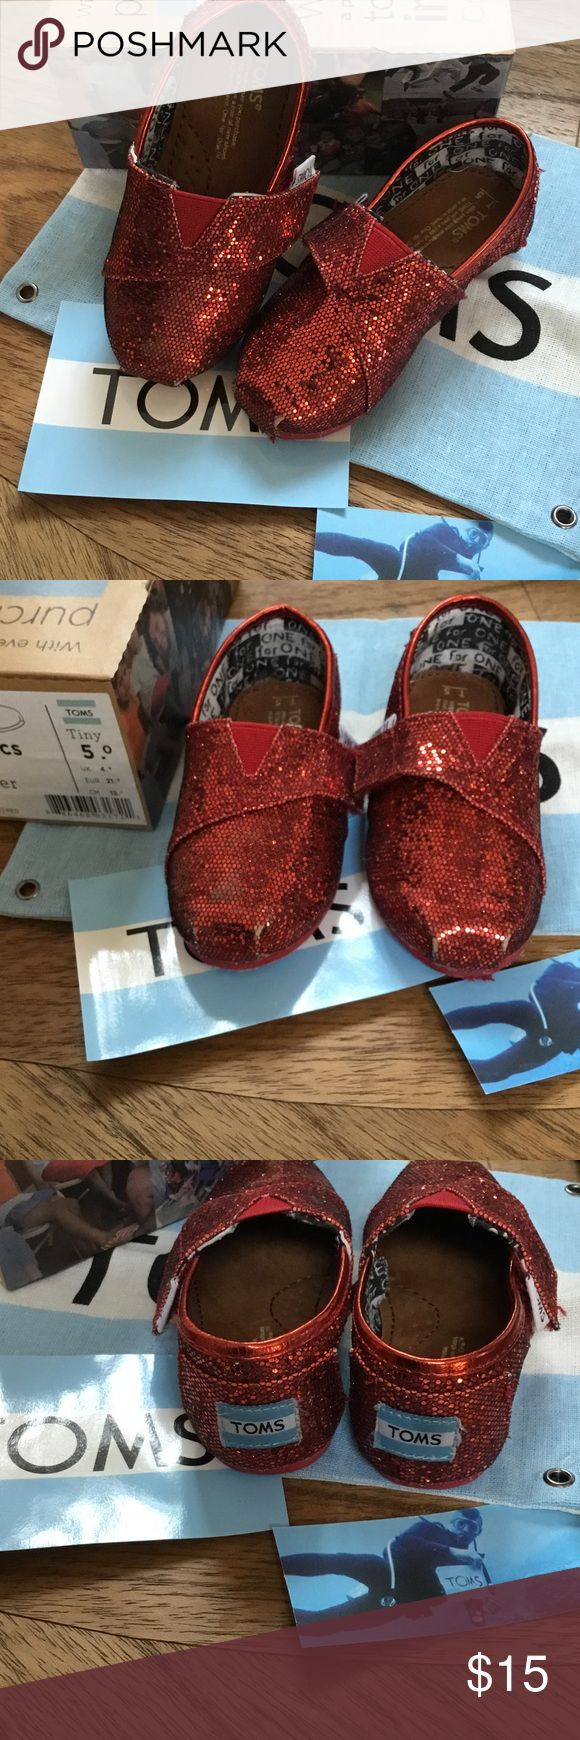 Ruby red glitter baby toddler walker toms sneakers Pre loved tiny toms slip one with Velcro closures.  Just like Dorothy's ruby slippers- would be great for Halloween. Minor wear on tips of toes but otherwise great shape!  Box & pouch included!  Pet free smoke free posher. Toms Shoes Baby & Walker